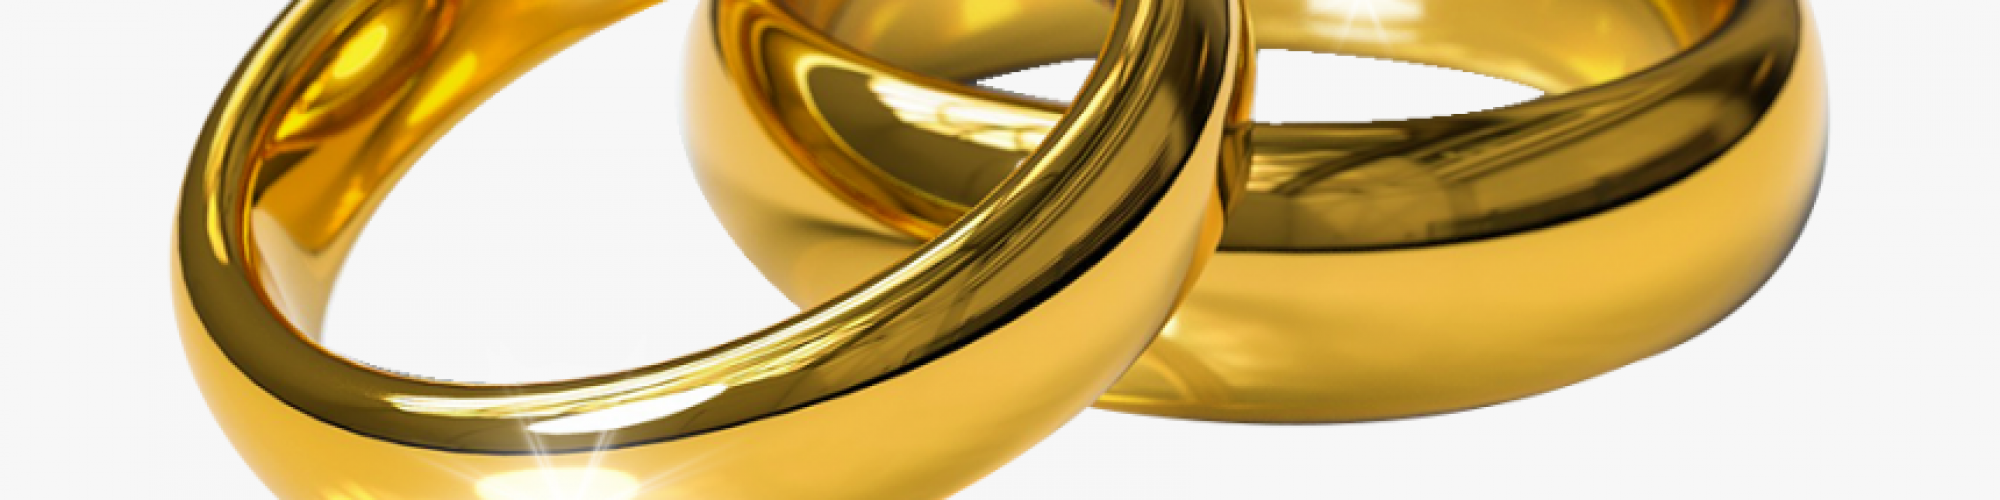 231-2314457_rings-transparent-background-download-gold-wedding-rings-png